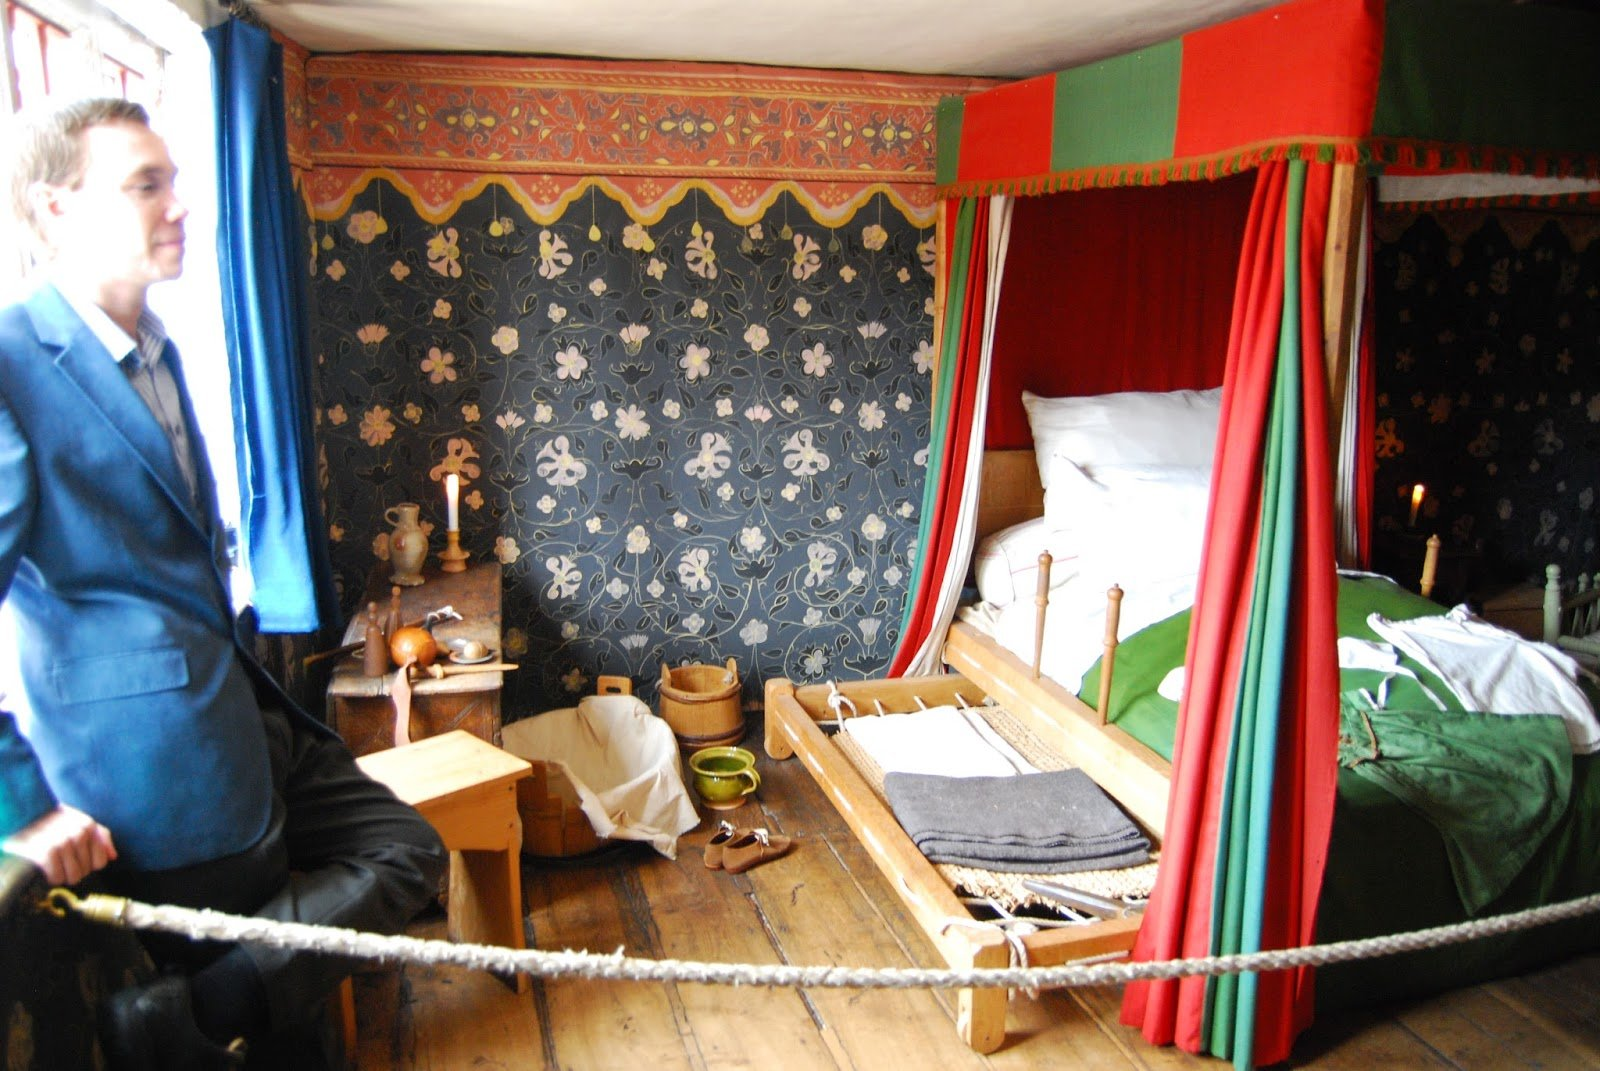 Best A Visit To The Birthplace Of William Shakespeare With Pictures